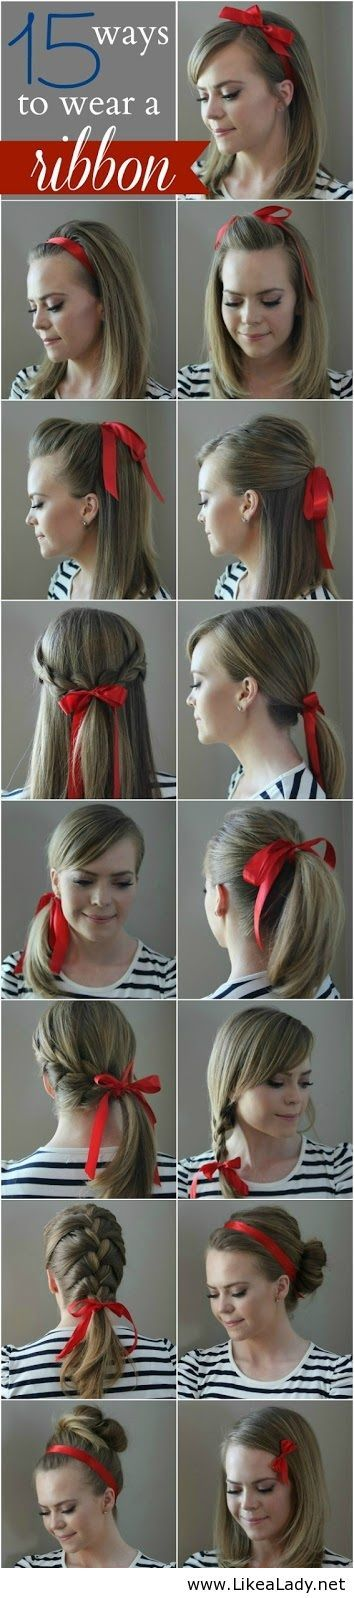 Ways to wear a ribbon